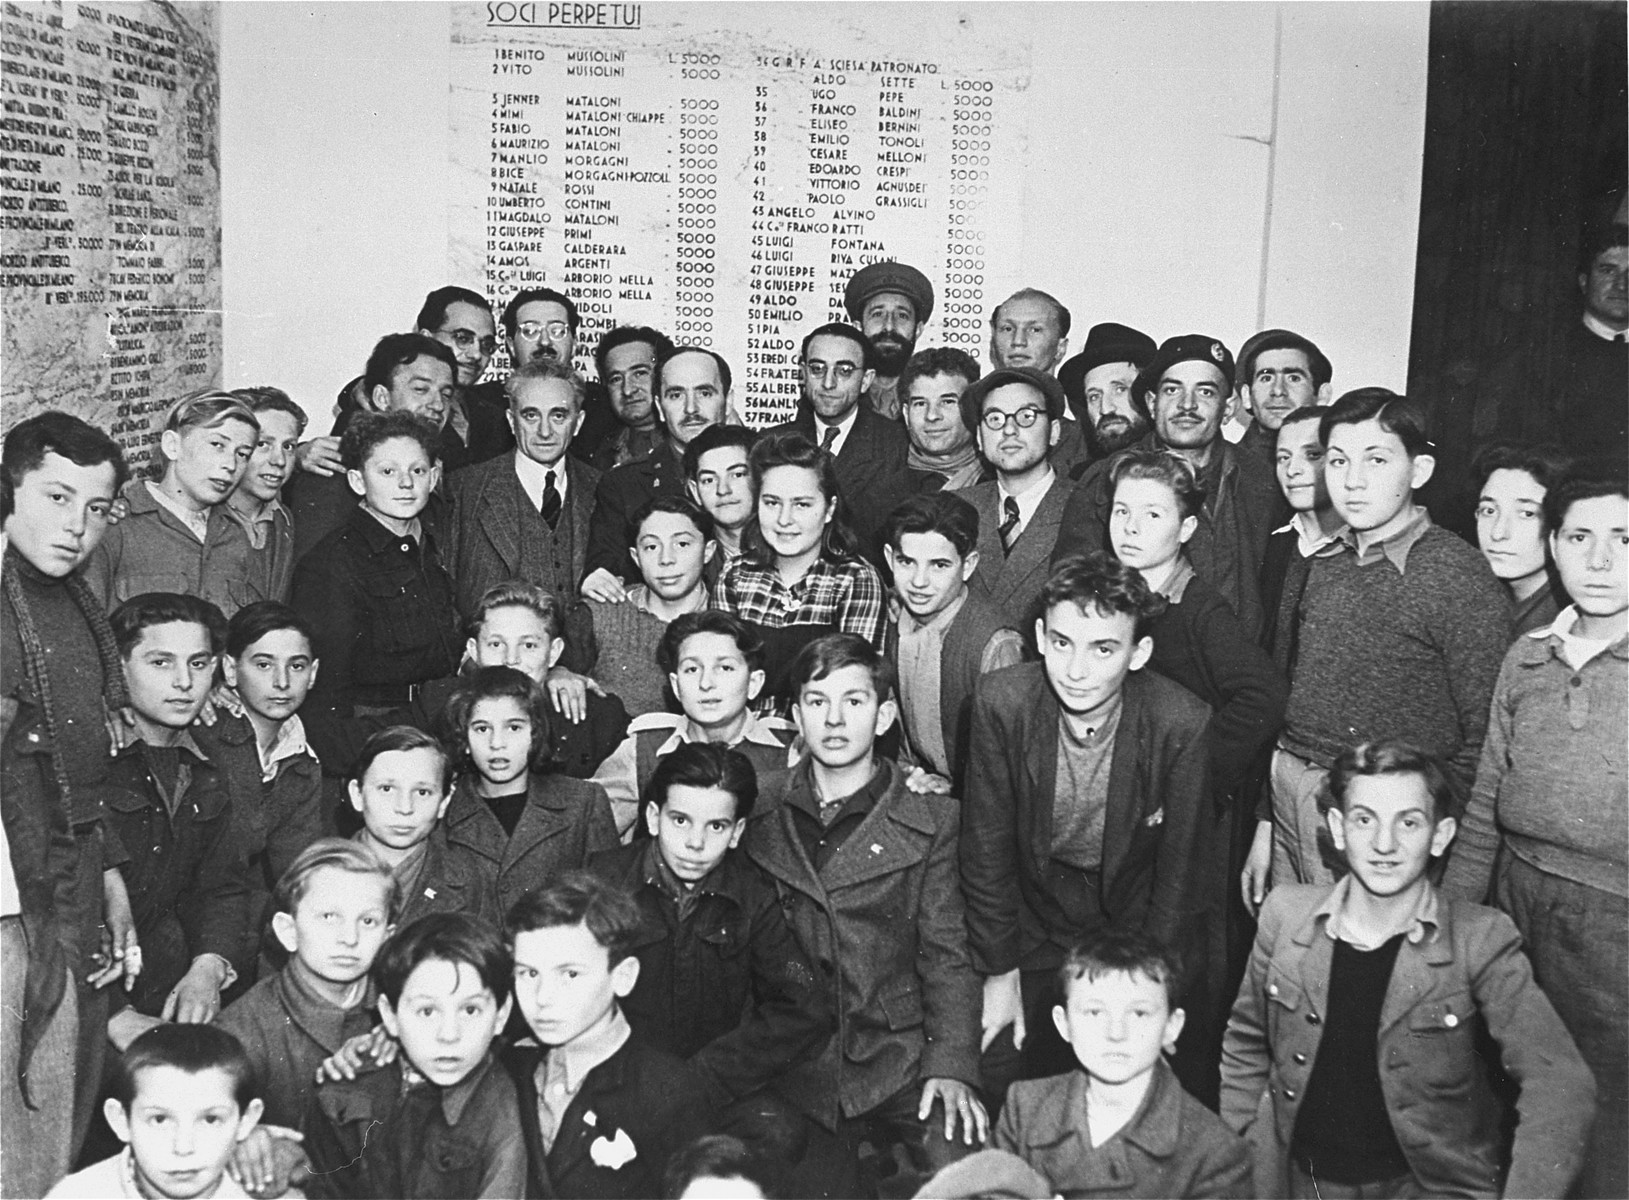 Group portrait of the staff and children of the Youth Aliyah children's home in Selvino, Italy.  The names on the wall are Italian donors who paid for Mussolini to build the villa as a Fascist youth center.  Among those pictured are Izak Abramowitz, Yaakov Meriash, Avraham Lipkunski, Jeshayahu Flamholz, Anita Teitelbaum, Moshe Blumenstock, Leon Lindenbaum, Matitiahu Drobles, Chaim Abramowitz, Surkis, Moshe Zeiri, Israel Drobles, Alpert, and Szlama Fachter.